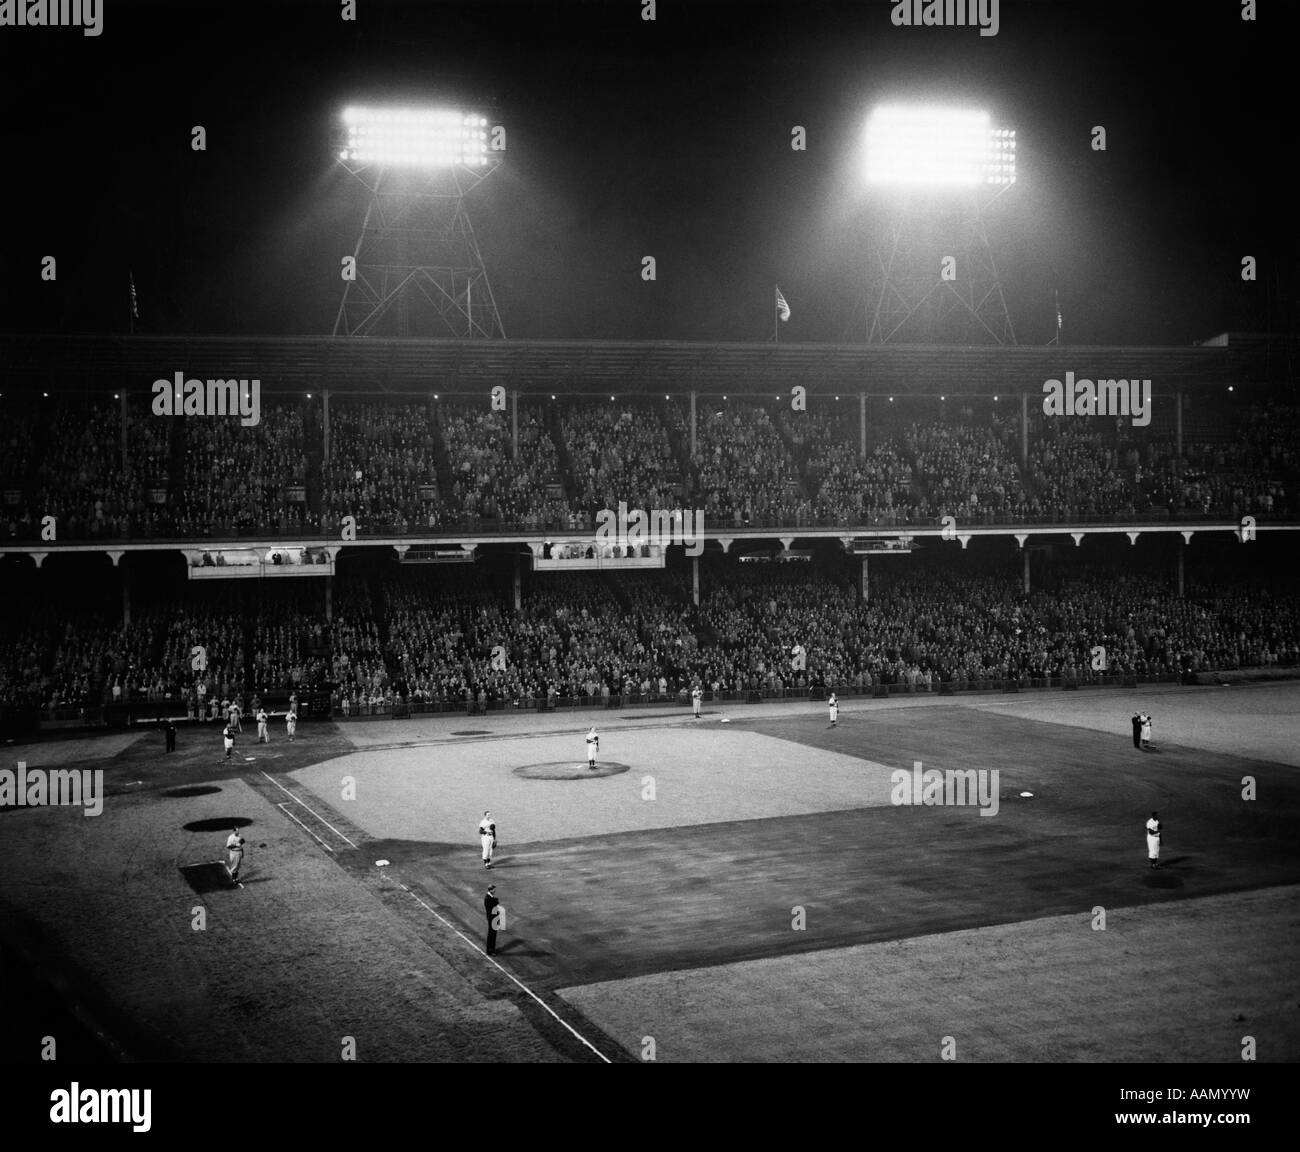 1940s 1947 BASEBALL GAME EBBETS FIELD BROOKLYN NEW YORK PLAYERS STANDING FOR NATIONAL ANTHEM - Stock Image